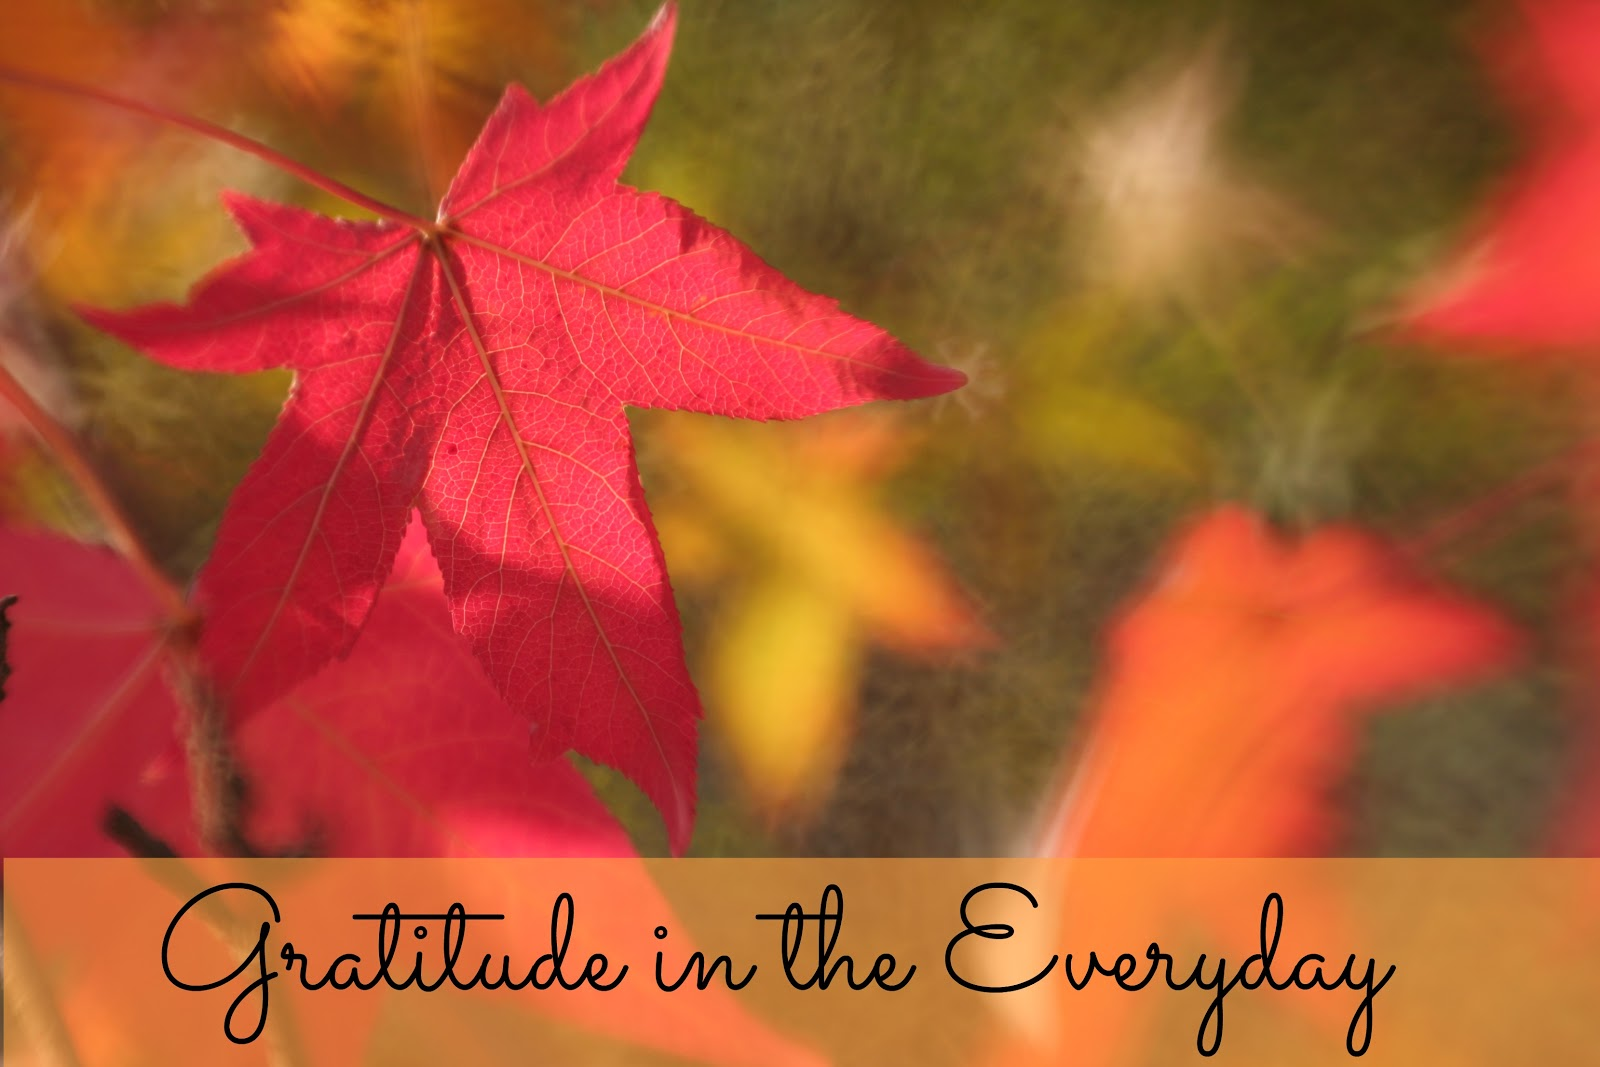 in fact i am grateful that i m alive and i m filled with gratitude for all of the wonderful amazing loving and caring individuals who are a part of my